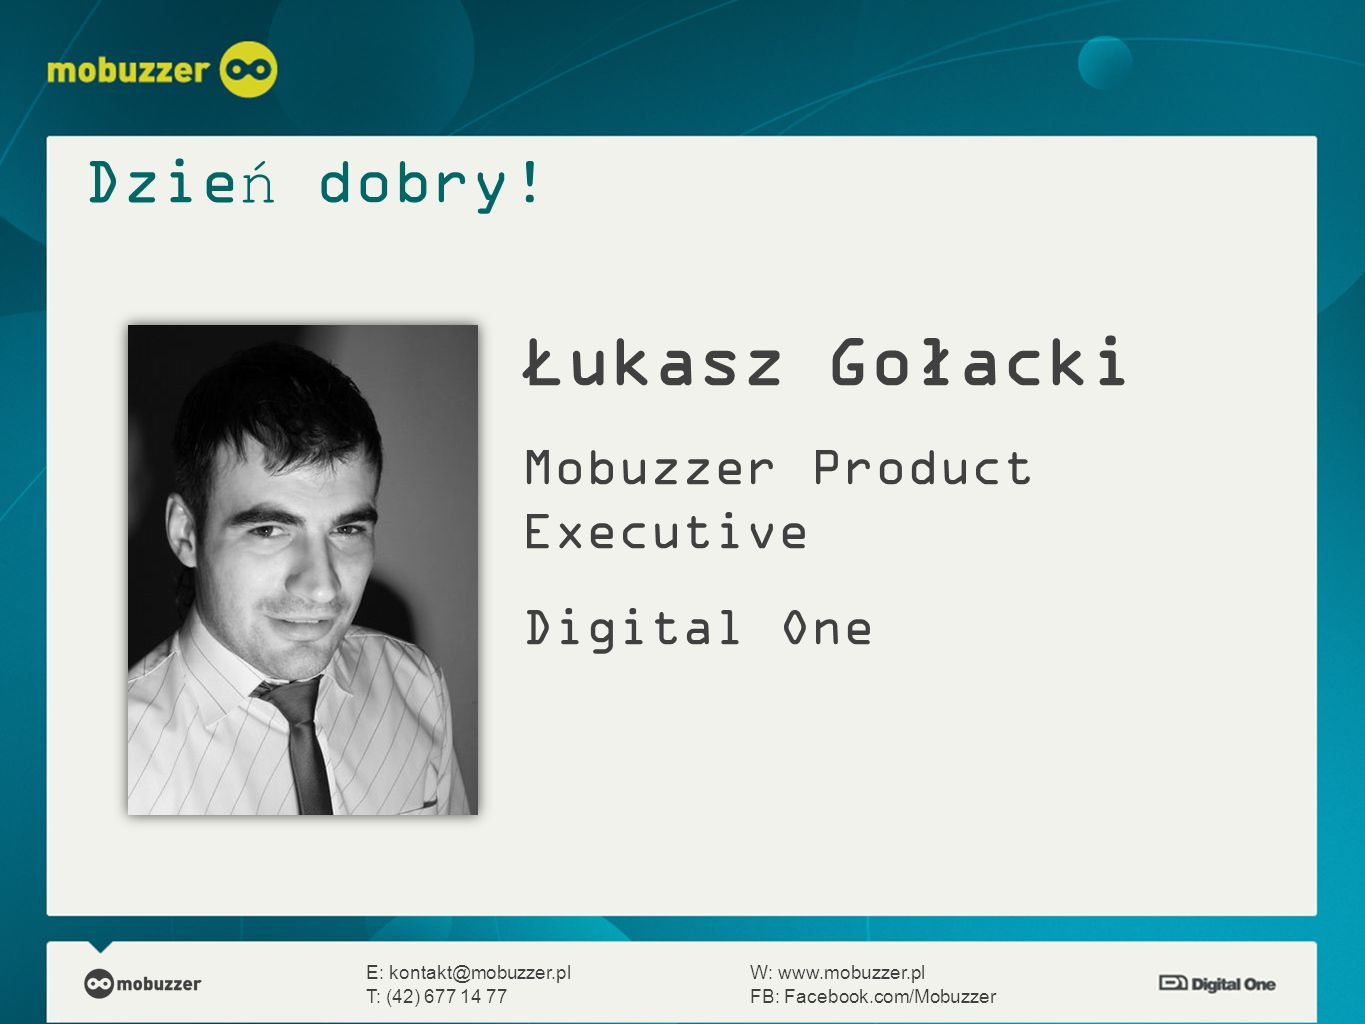 Łukasz Gołacki Mobuzzer Product Executive Digital One